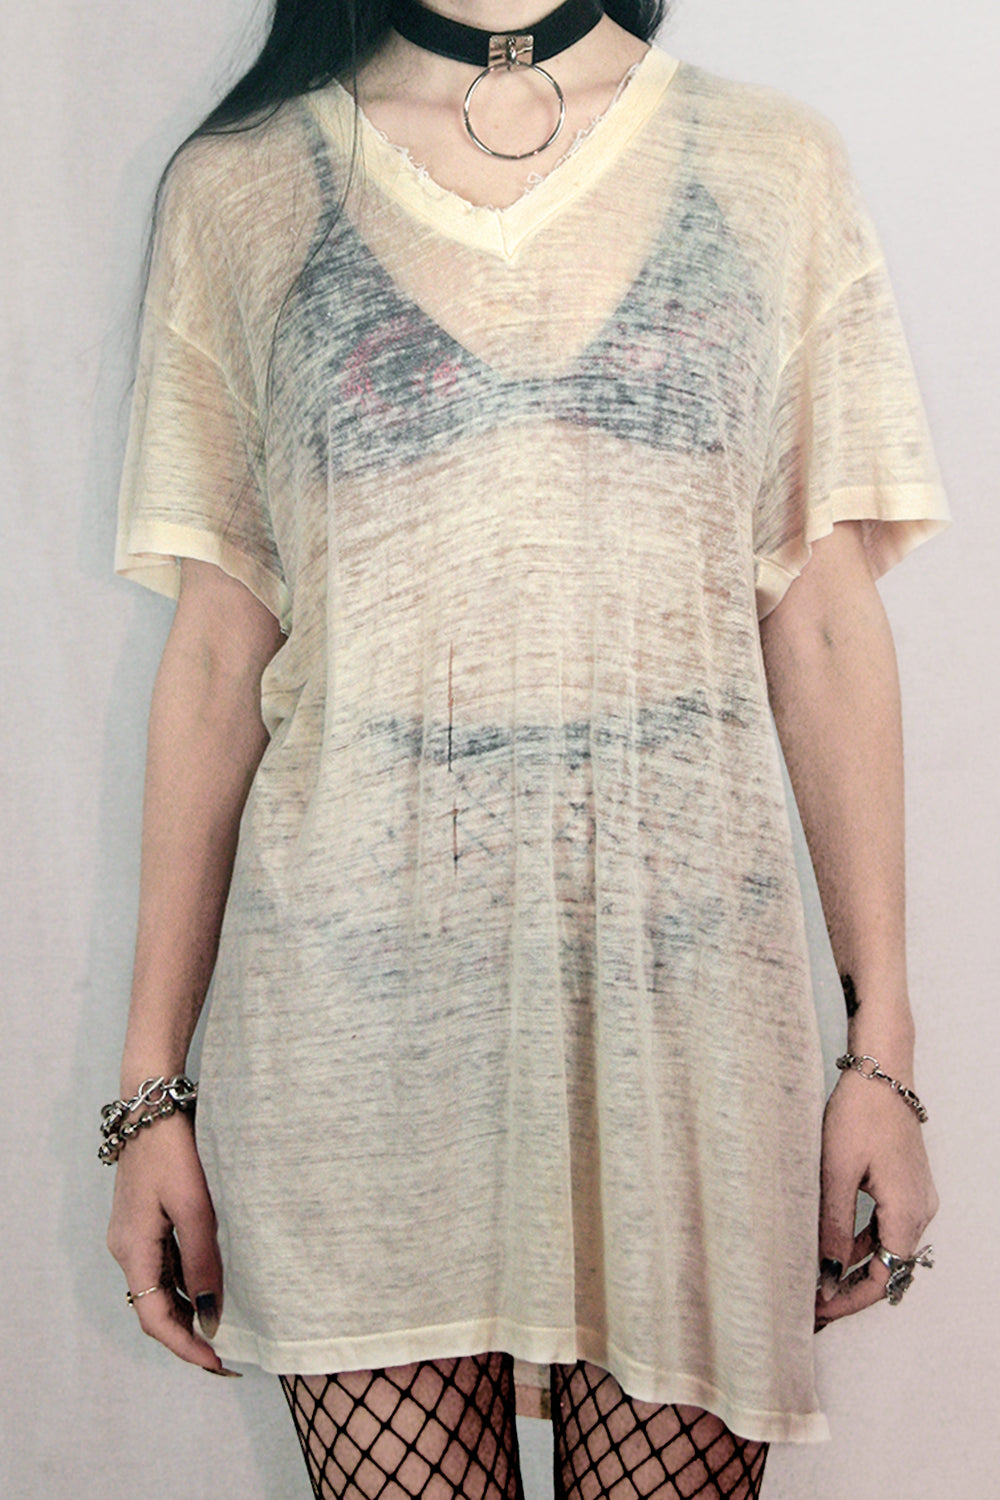 Sheer & Destroyed Vintage White Tee